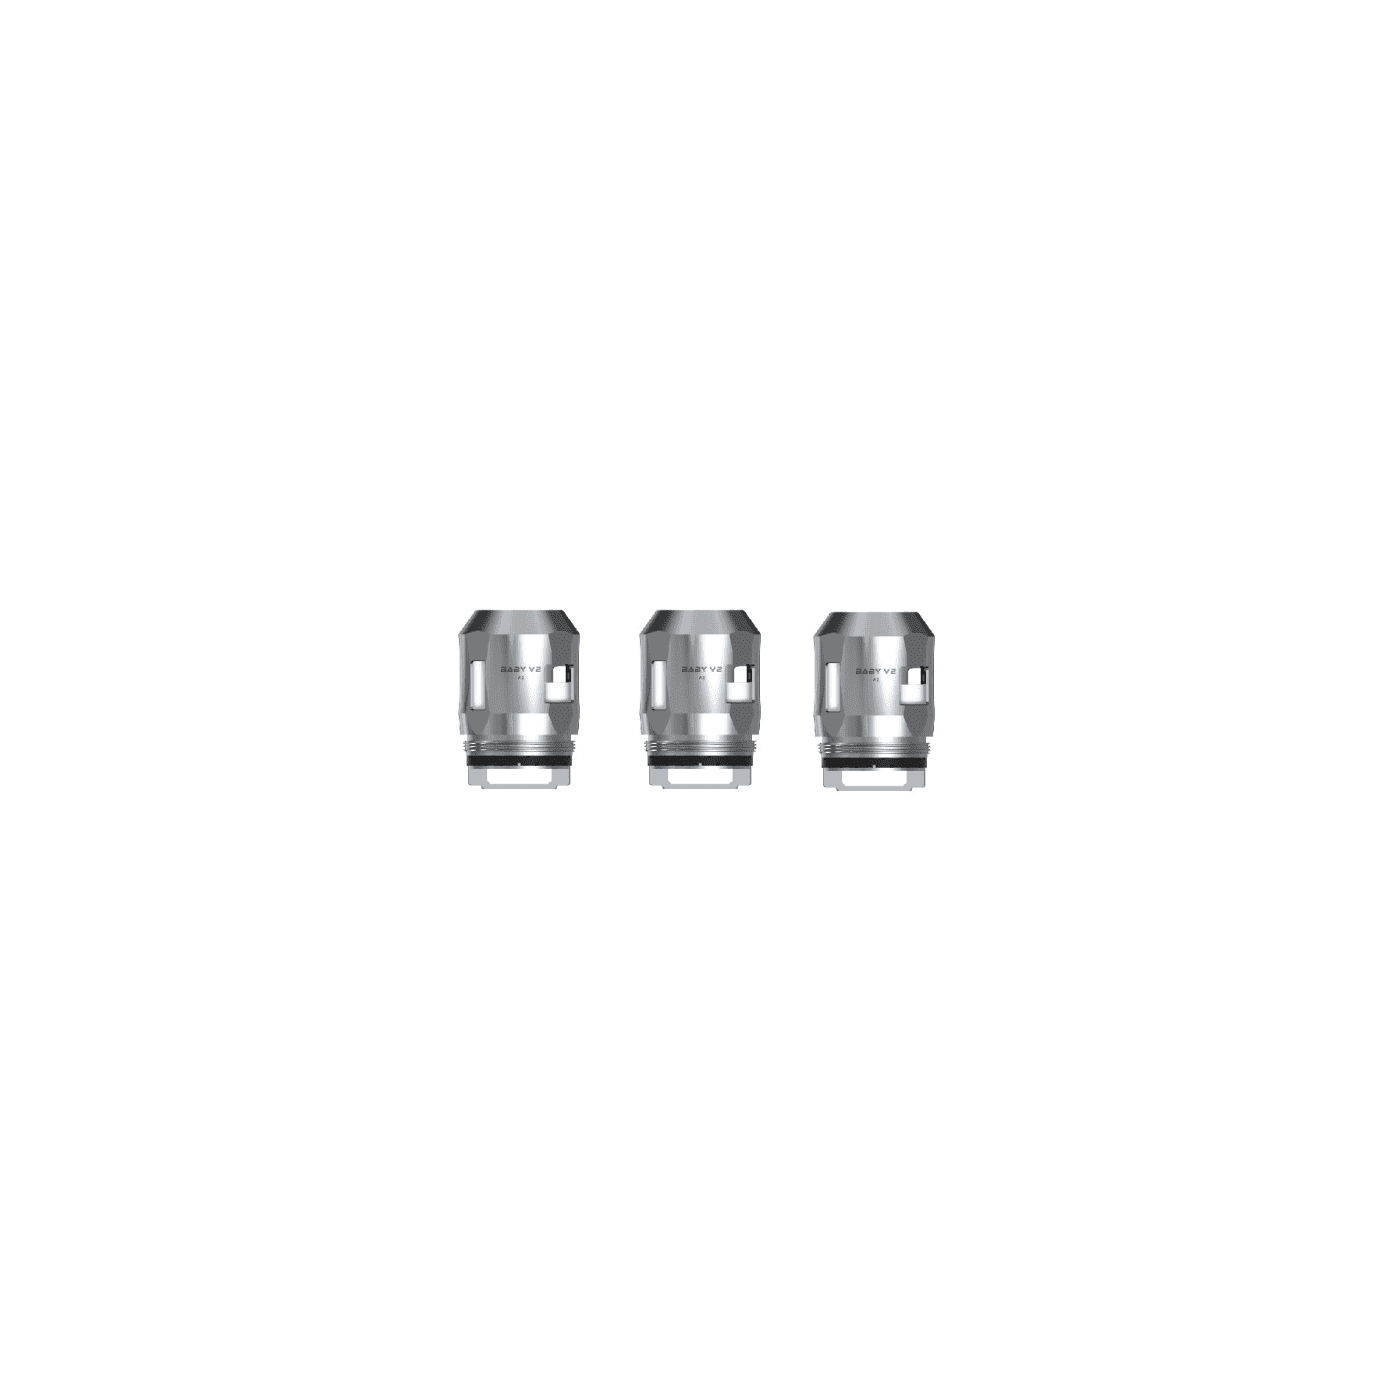 Smok TFV8 Baby V2 A2 Replacement Coil - 3 Pack